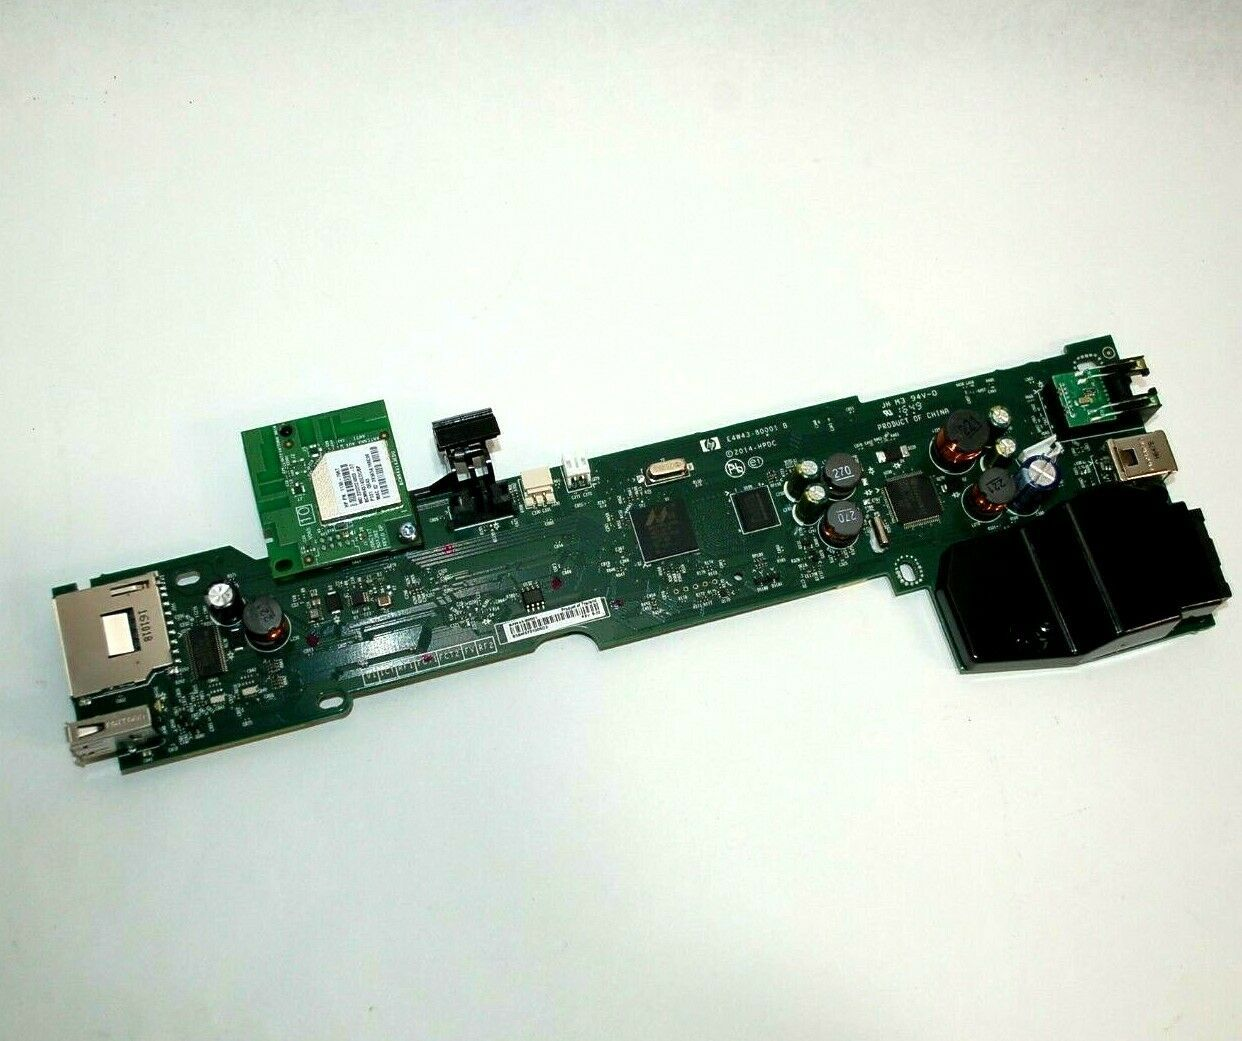 Primary image for HP Envy 7640 Printer Main Logic Board / Formatter 7645